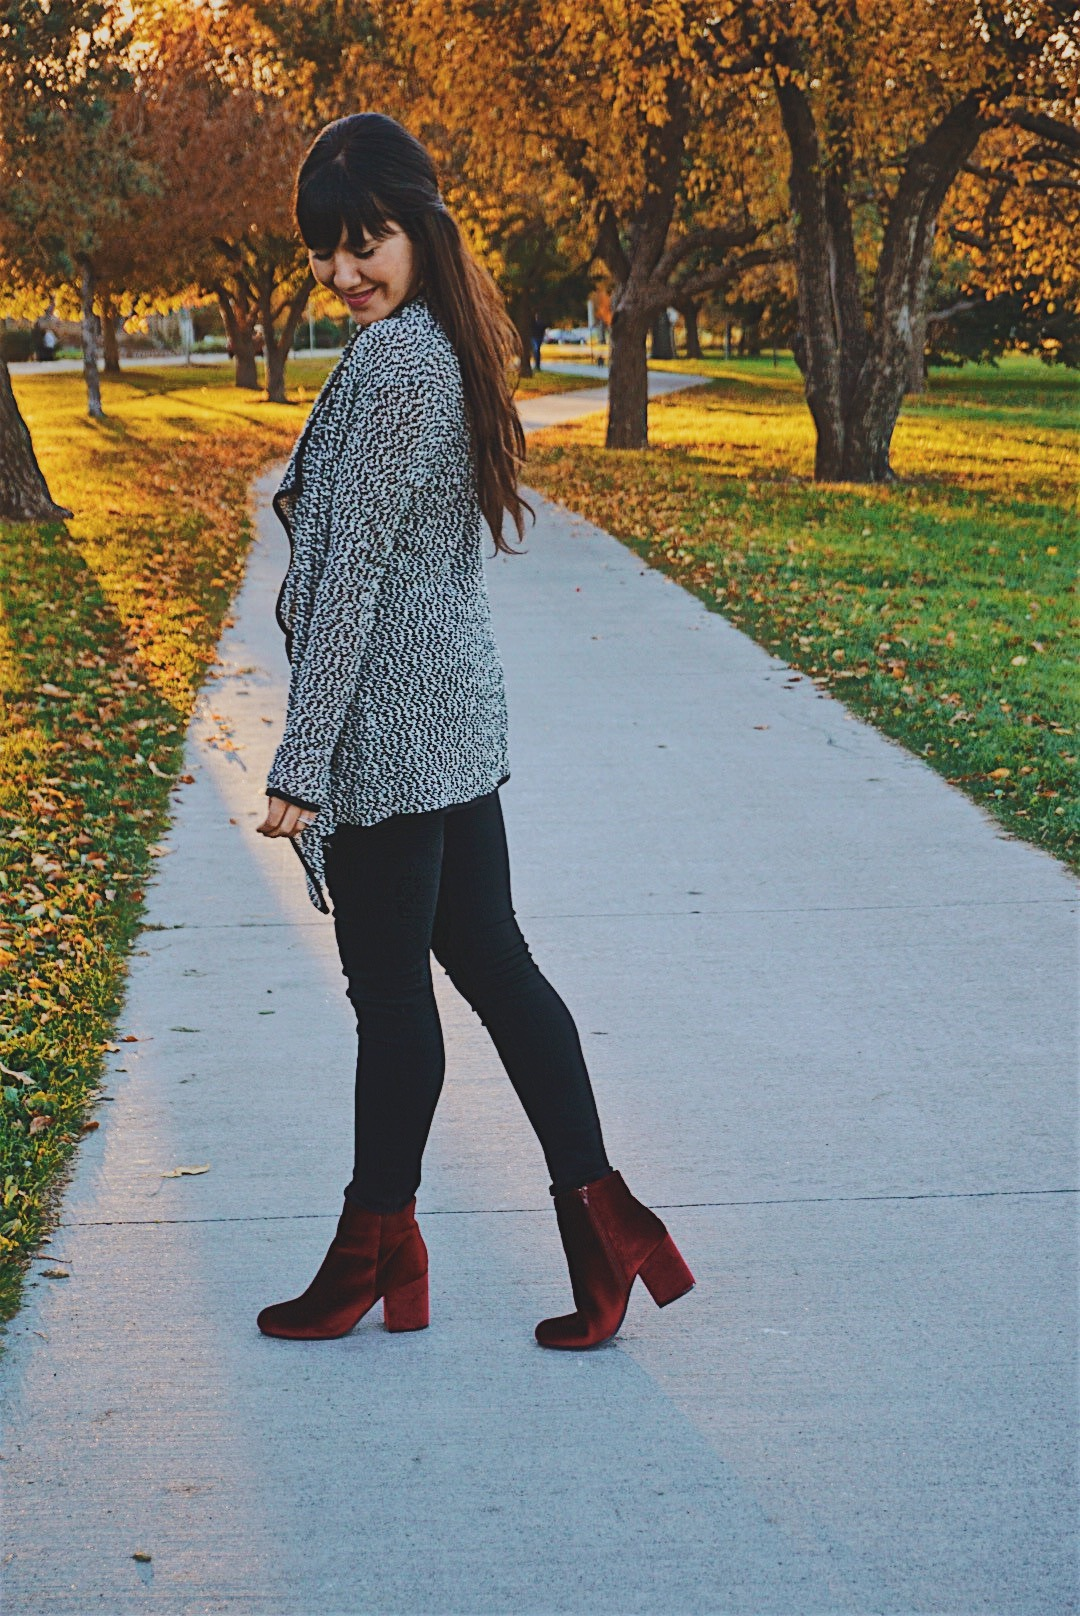 Red Suede Booties / Fall Sweater Look / Confidence in Fashion